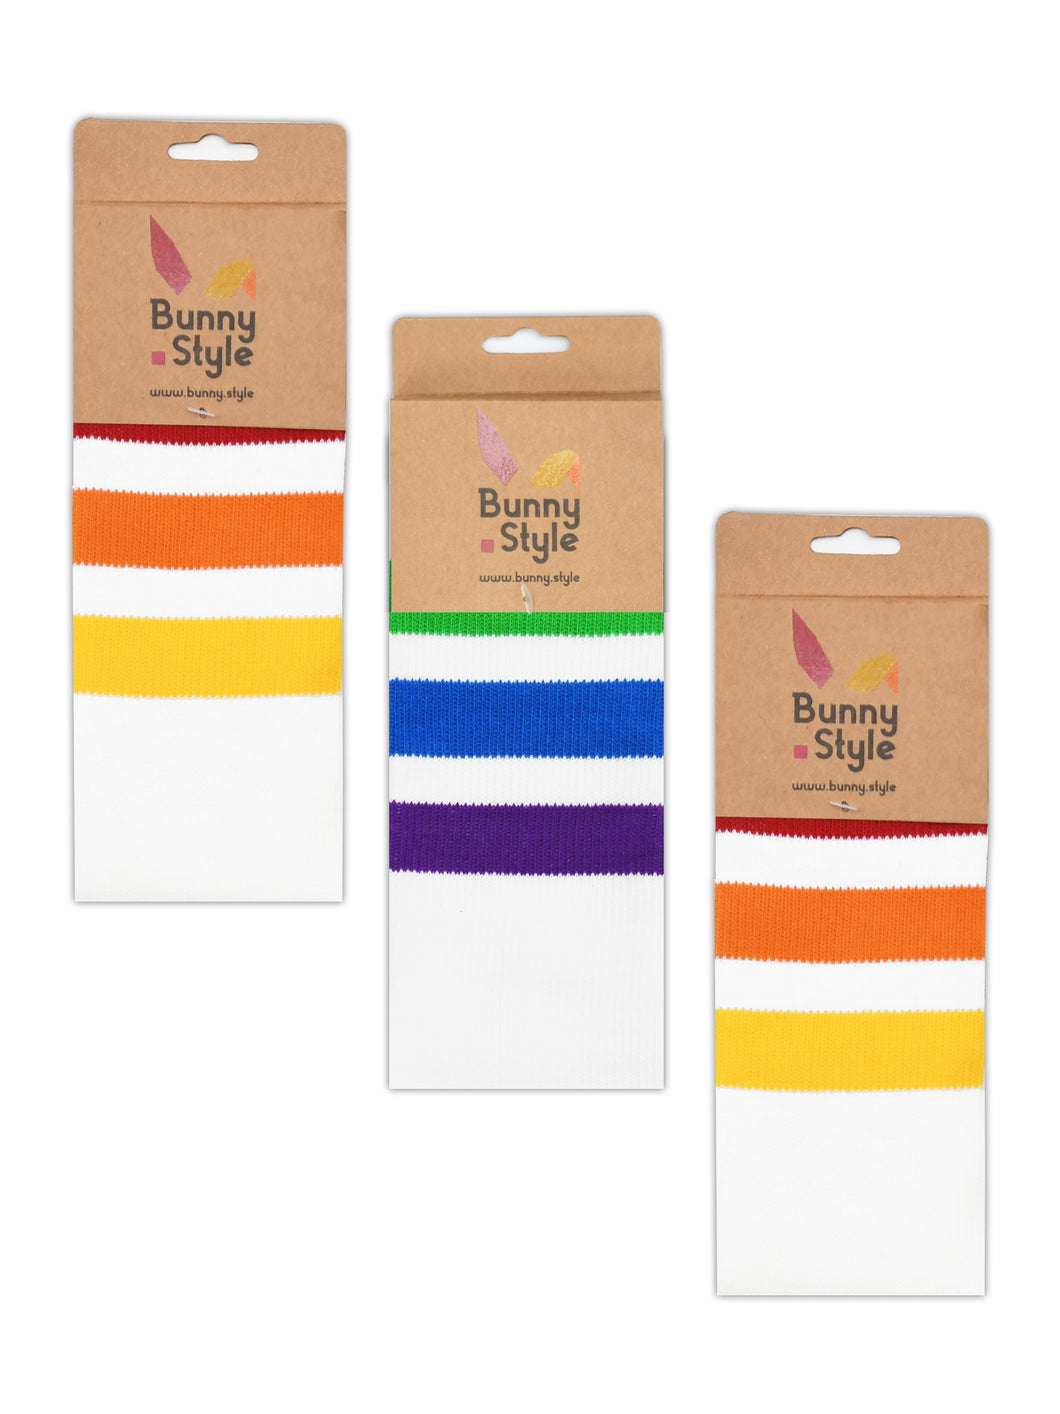 Gay LGBT Rainbow Pride Socks - BunnyStyle Pride Bunny London Collection - White Retro Socks - 3 Pack